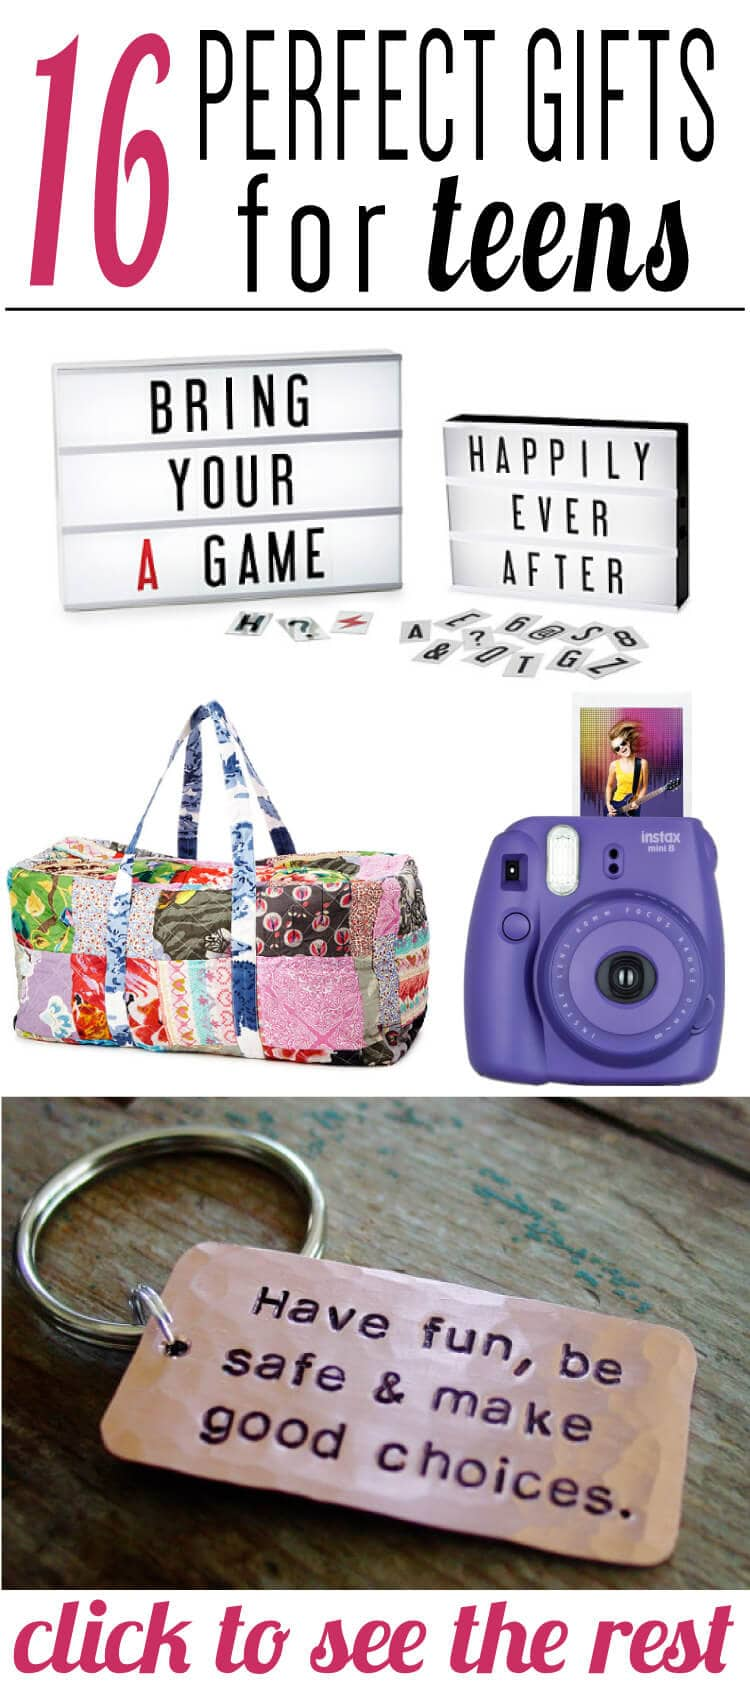 Holiday Gift Guide: What to Get for Teen Girls - Vivid's |Awesome Stuff For Teens